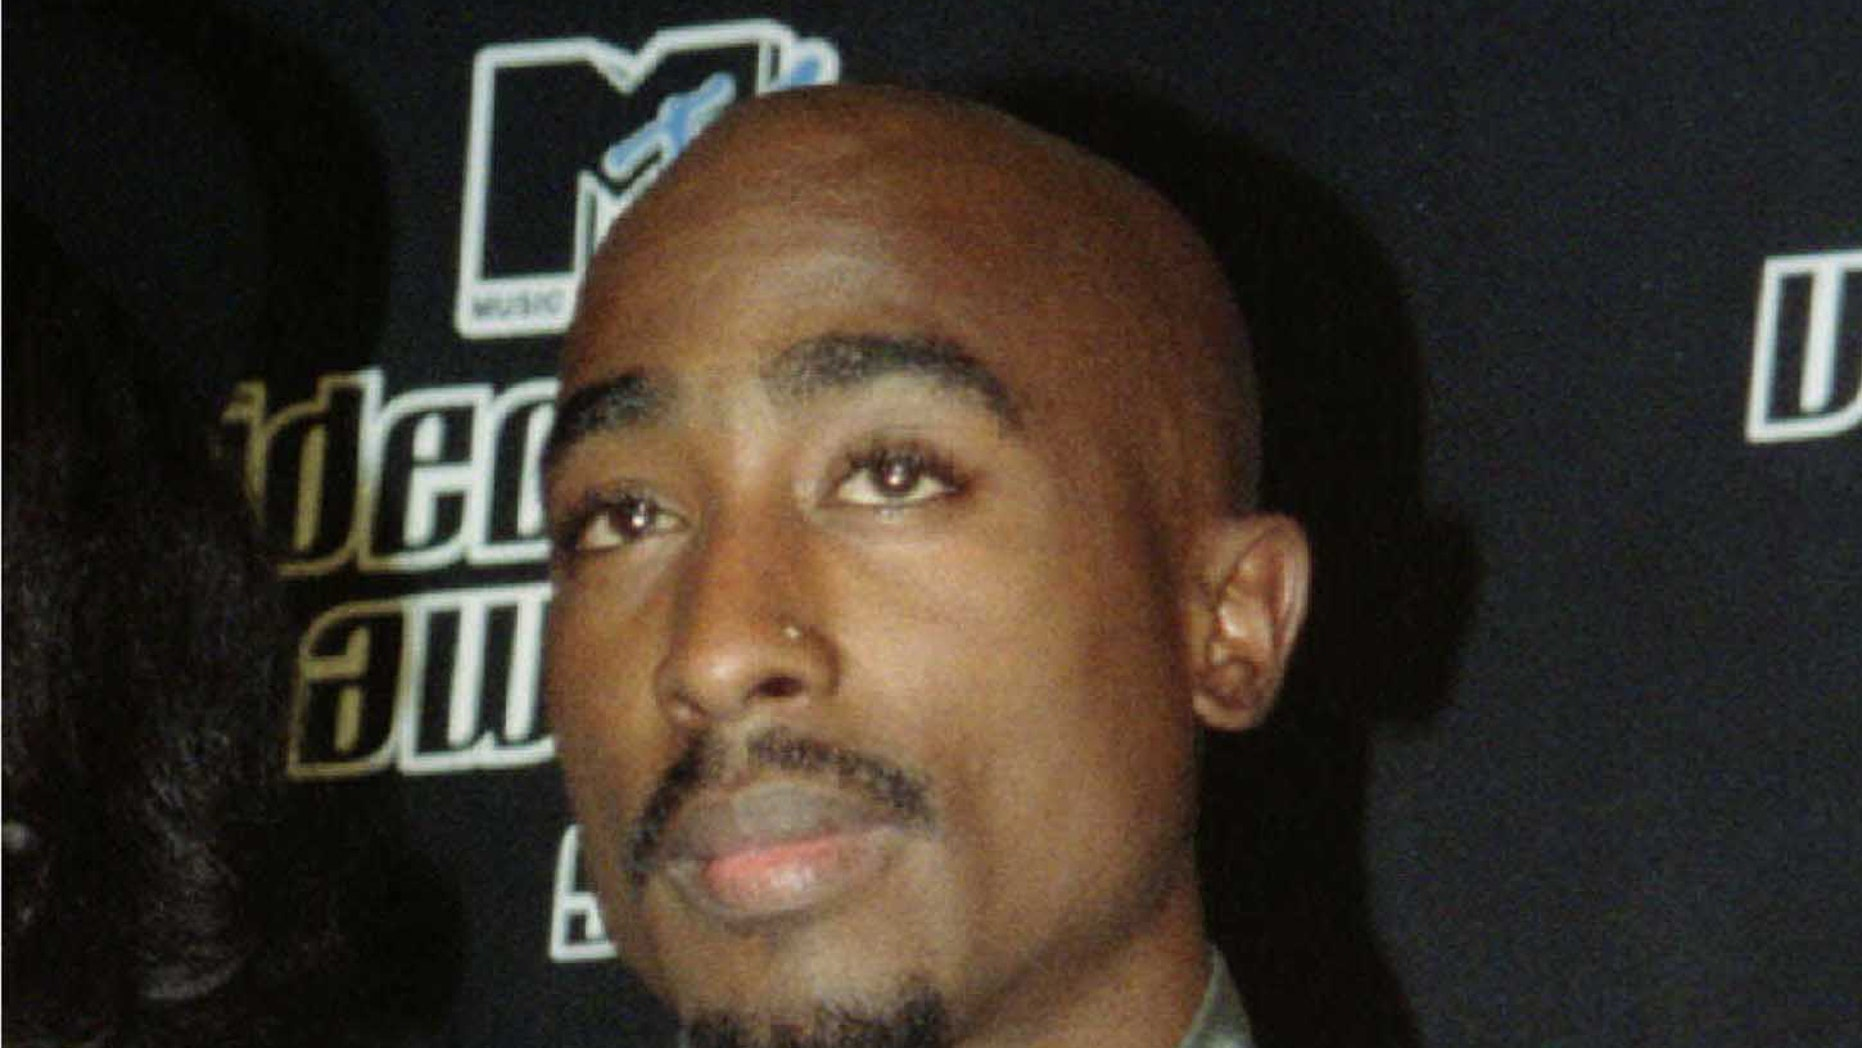 Rapper Tupac Shakur appears at the MTV Music Video Awards in New York on Sept. 4, 1996.